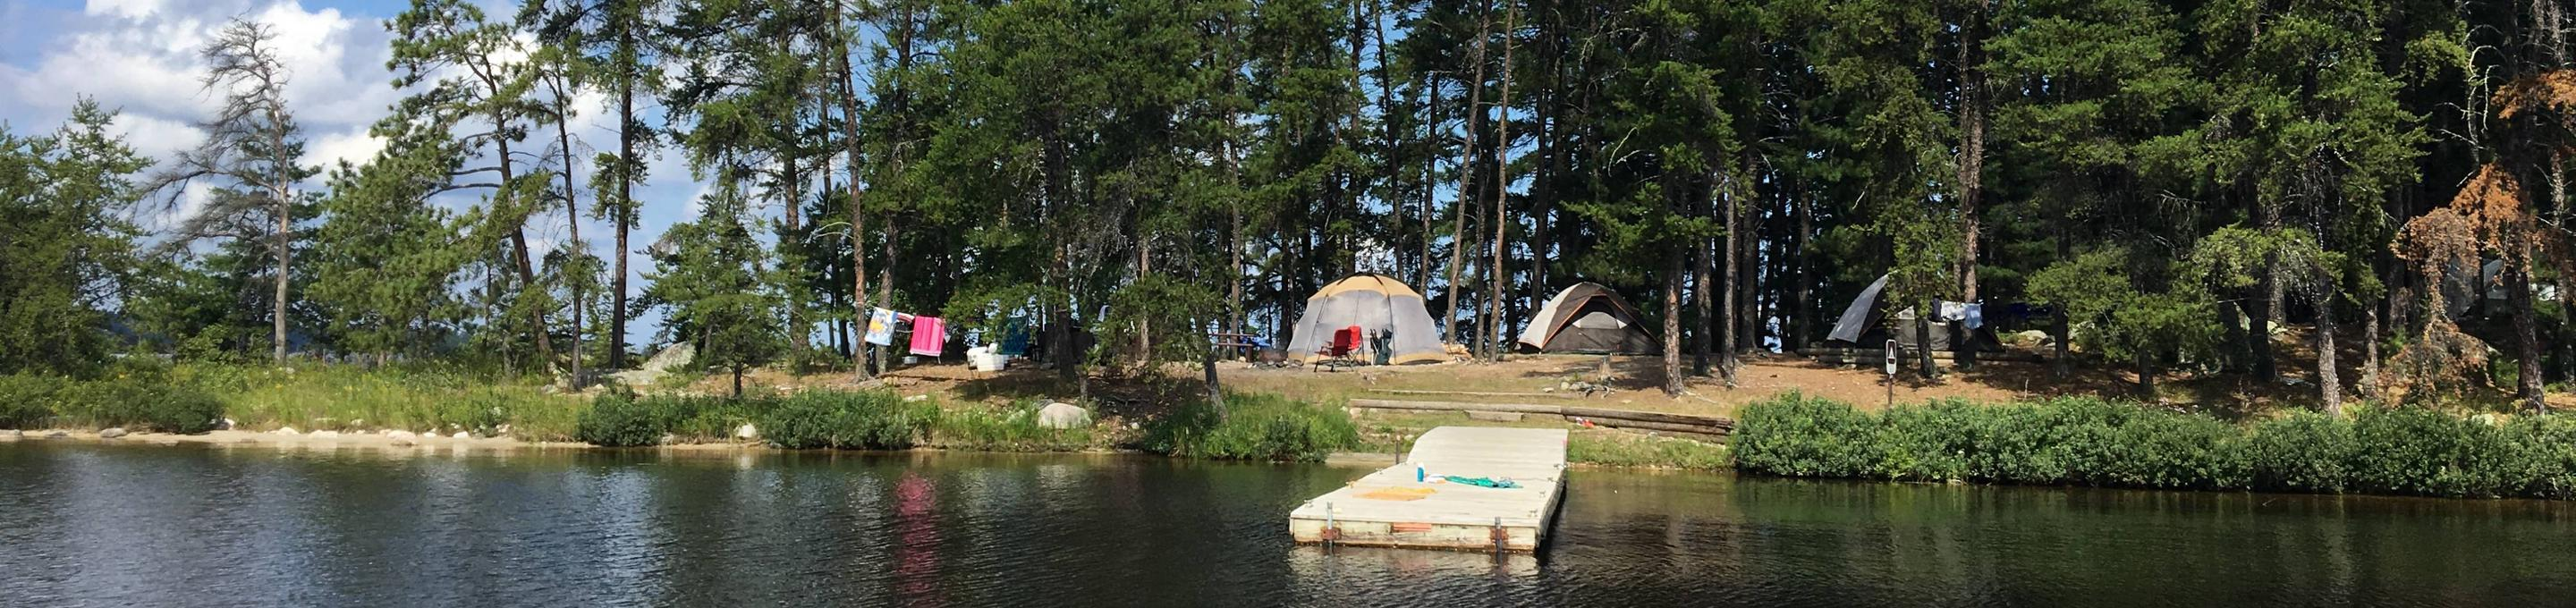 R27 - Virgin Island SouthR27 - Virgin Island South campsite on Rainy Lake